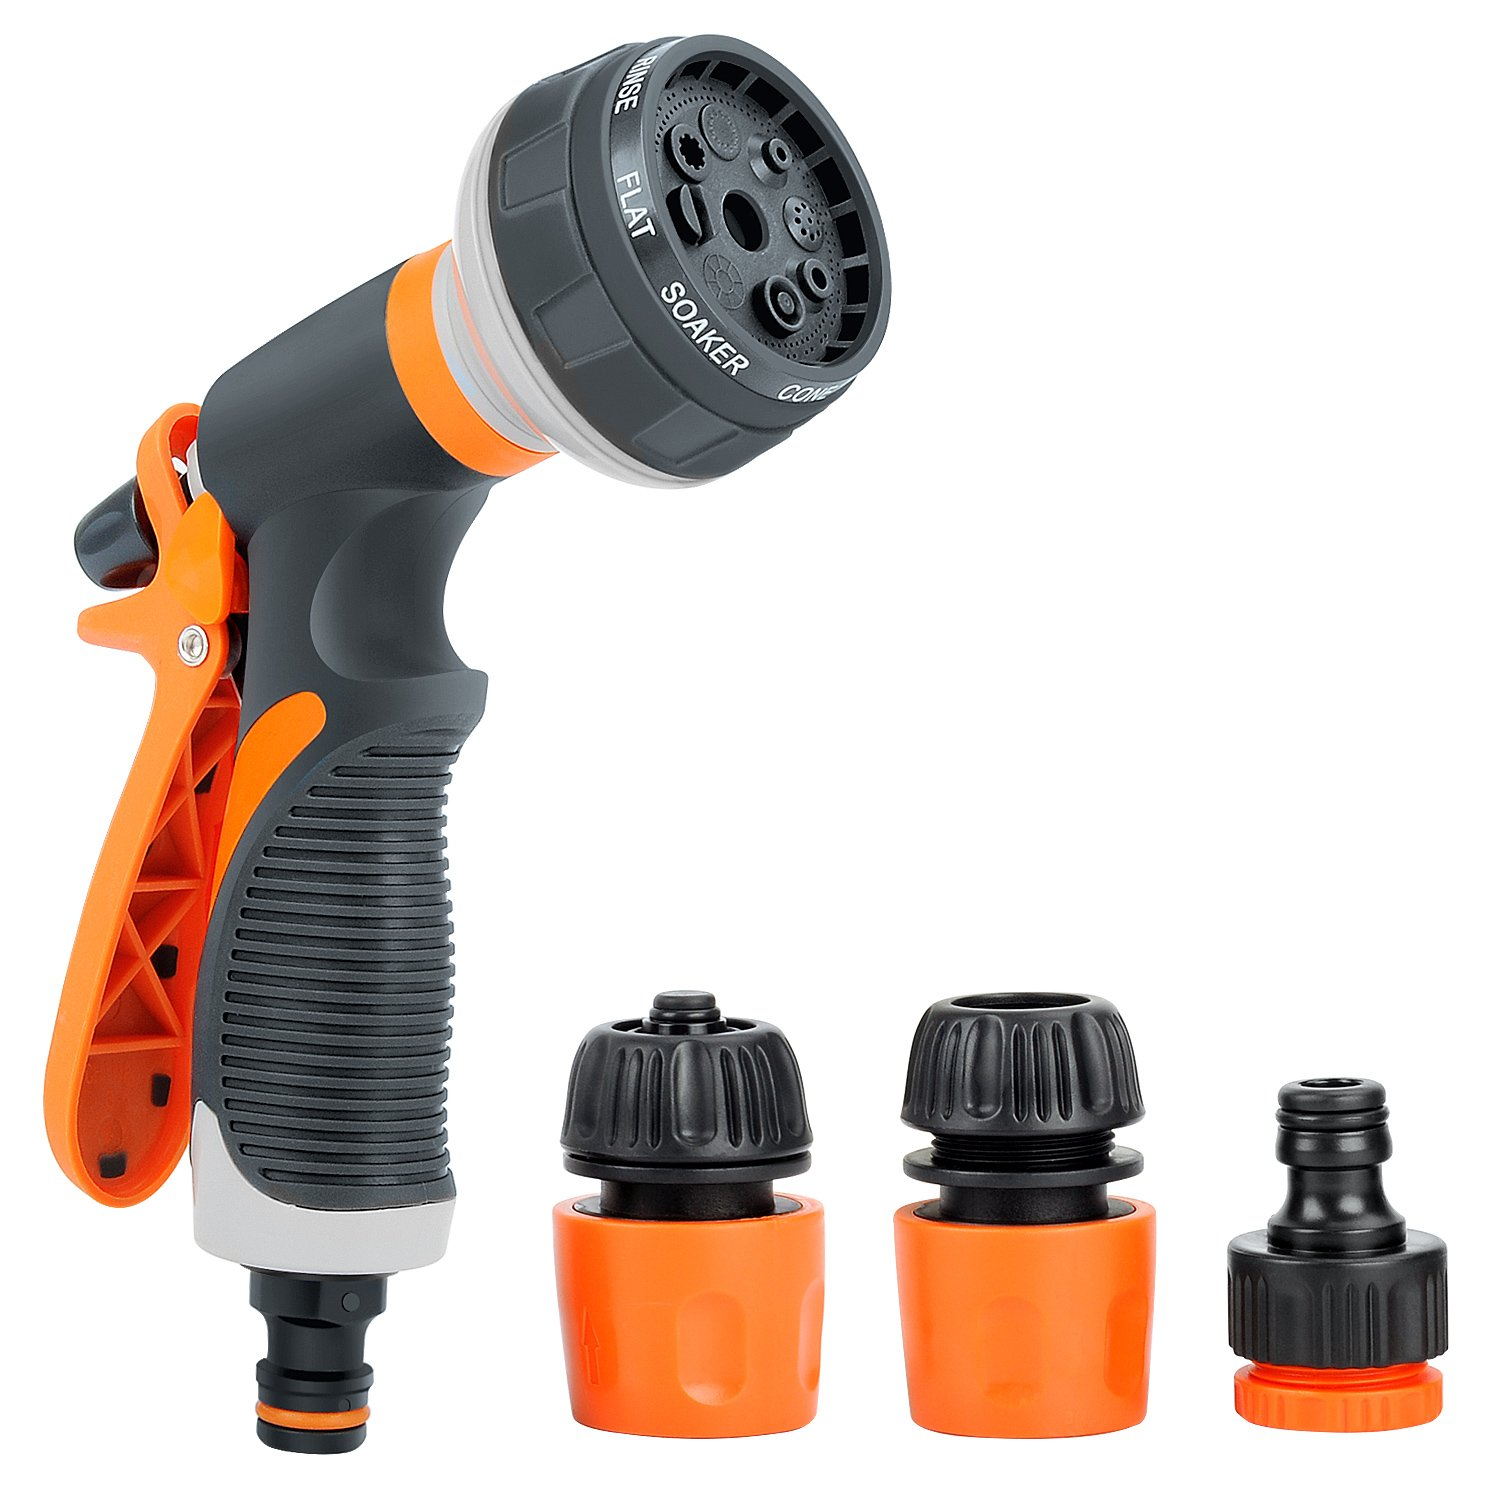 YBWM Hose Nozzles Garden Sprayer with Heavy Duty 8 Adjustable Watering Patterns for Watering Plants, Cleaning, Car Wash and Showering Pets.